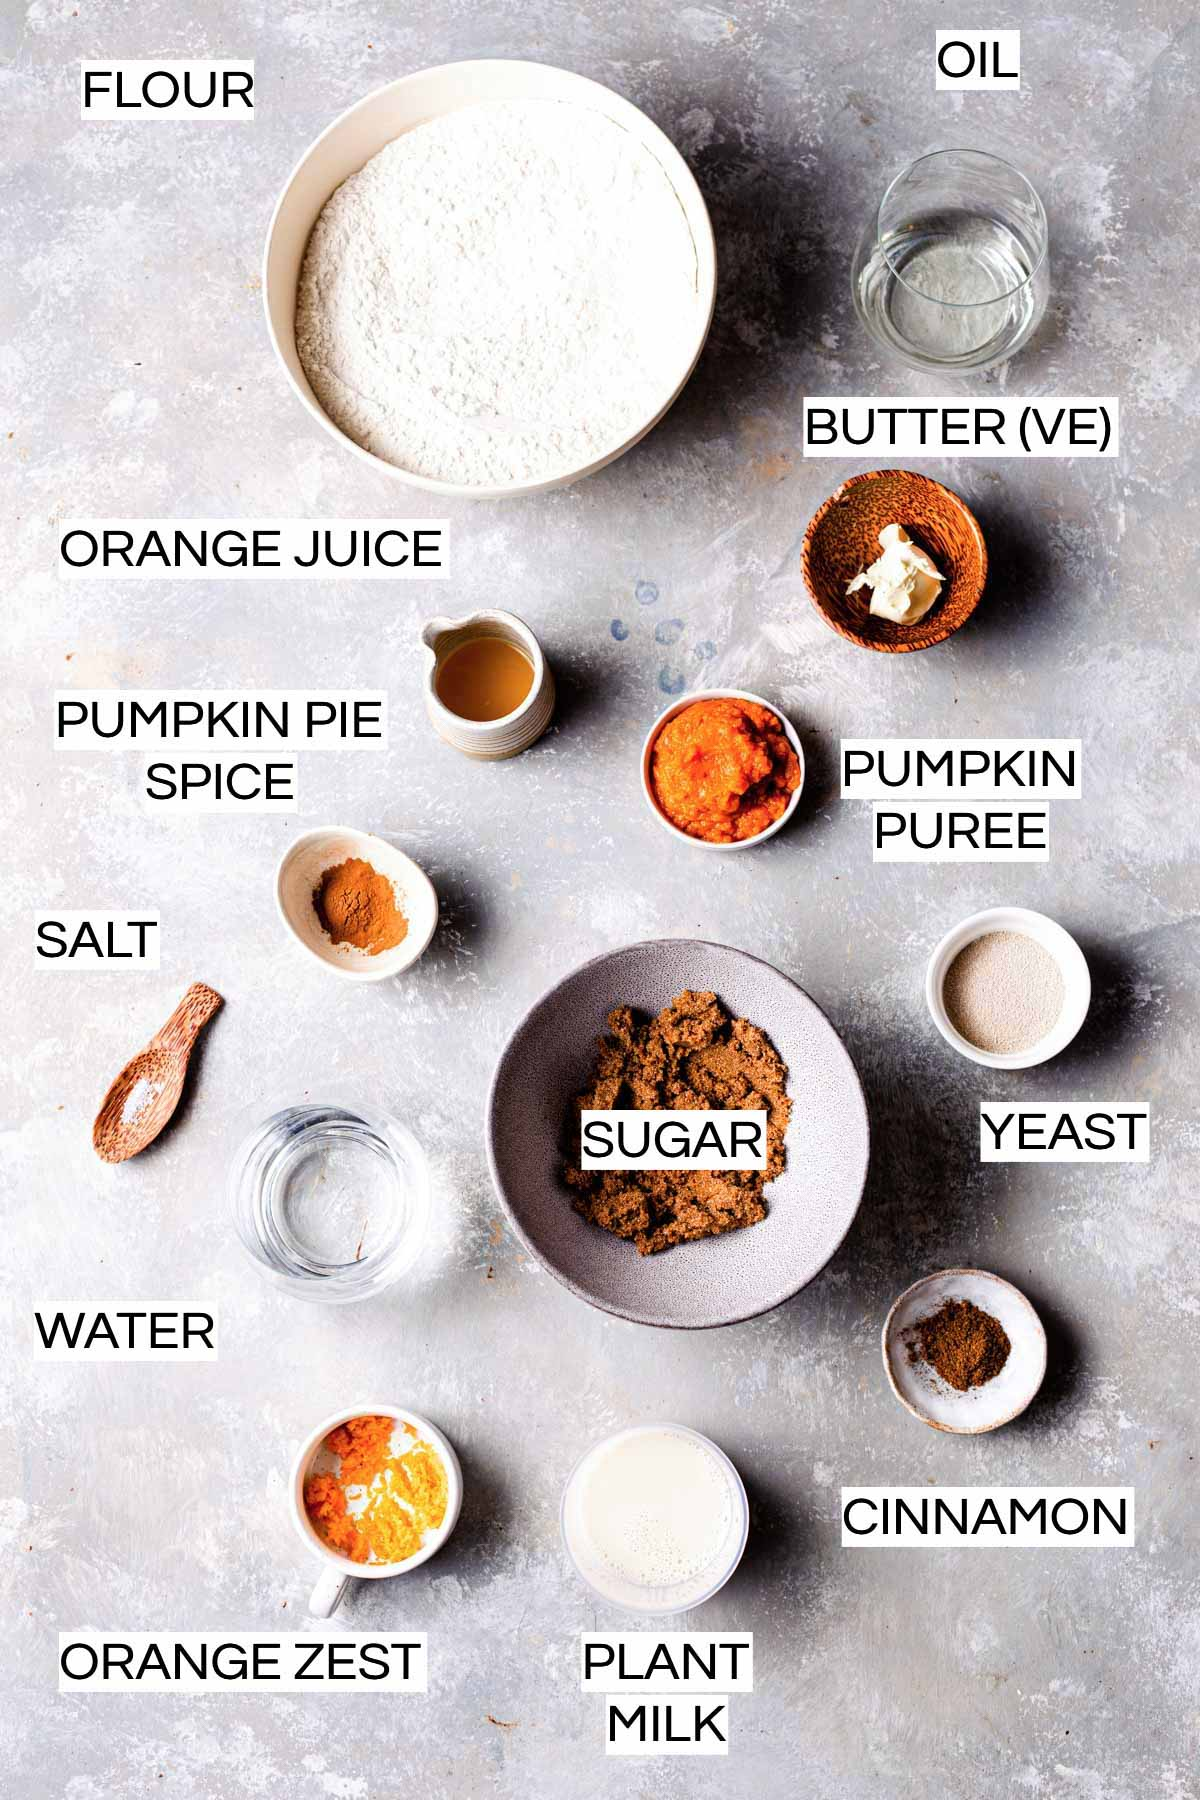 All ingredients needed to bake vegan pumpkin rolls laid out on a grey surface.